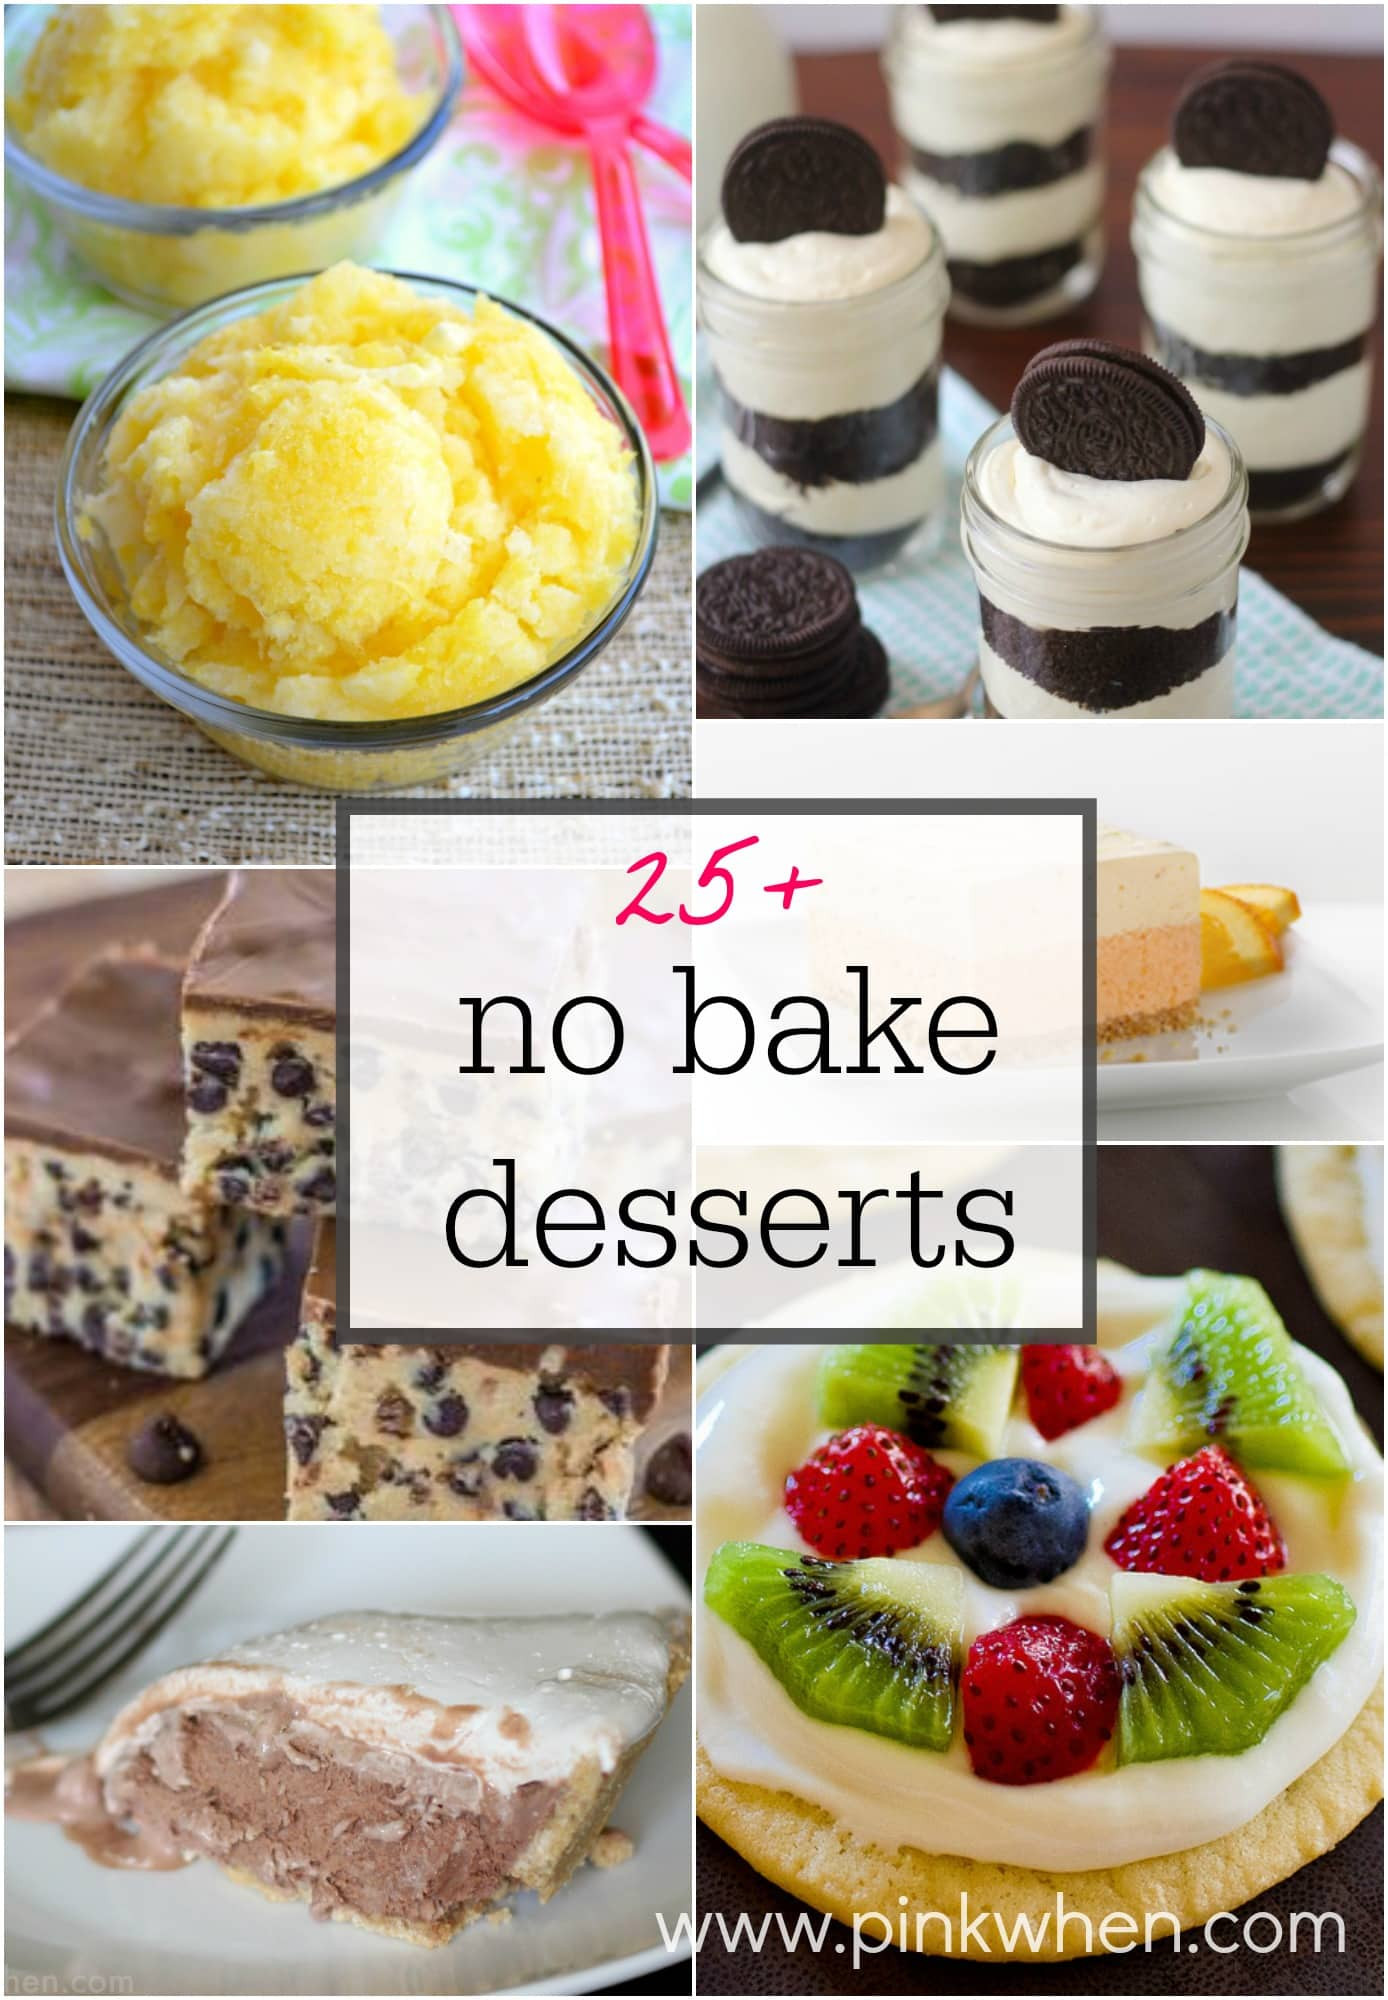 Easy Picnic Desserts  25 No Bake Dessert Ideas